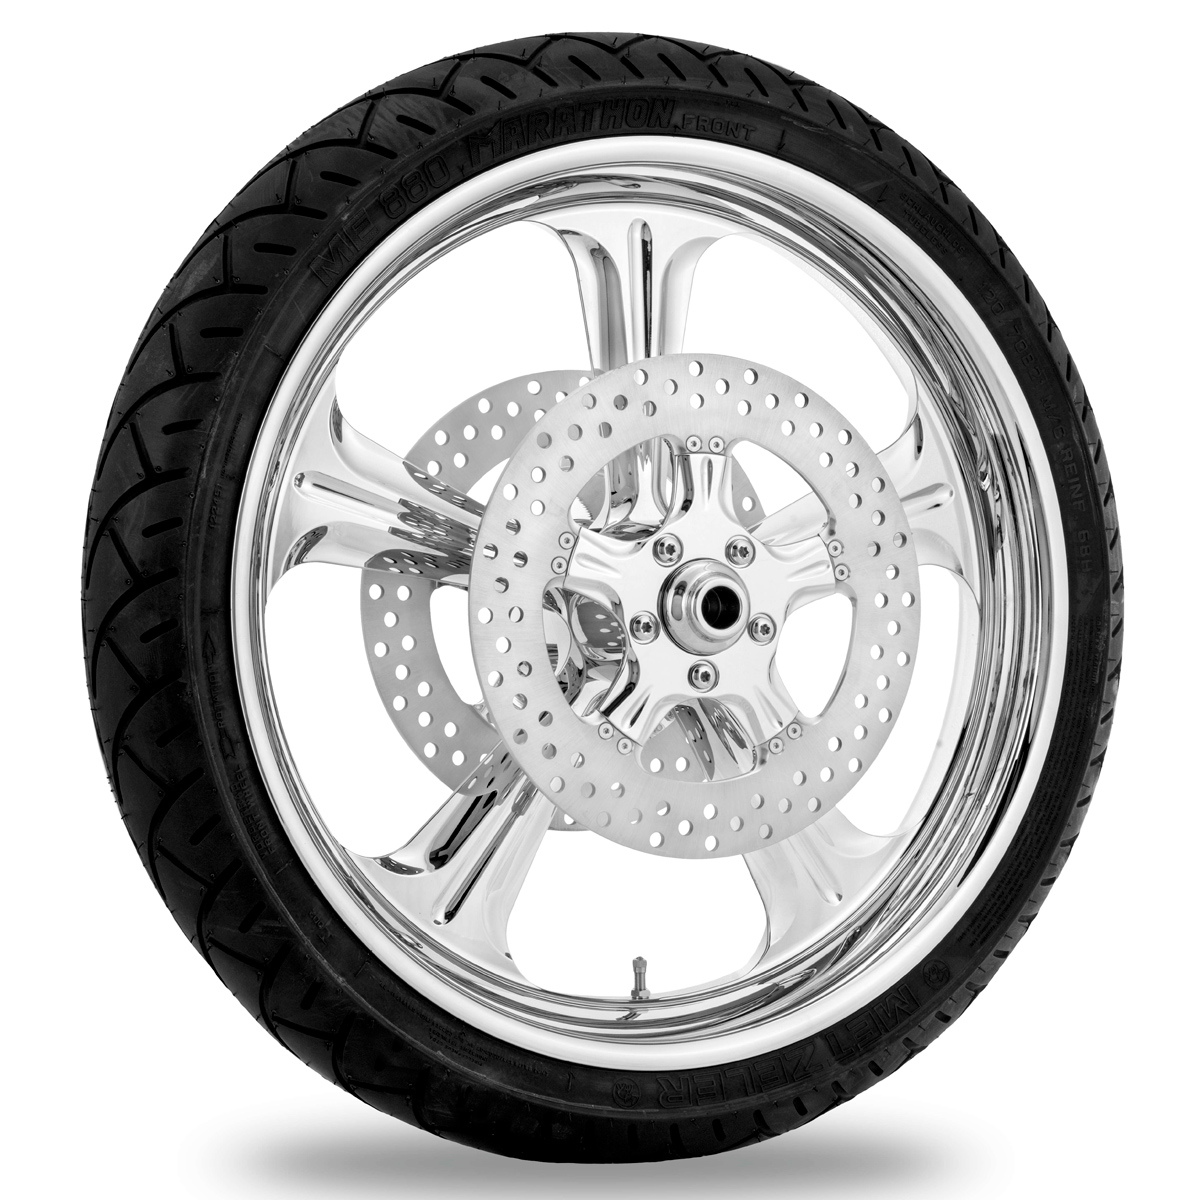 Performance Machine Wrath Chrome Front Wheel 21x2.15 With PM Disc